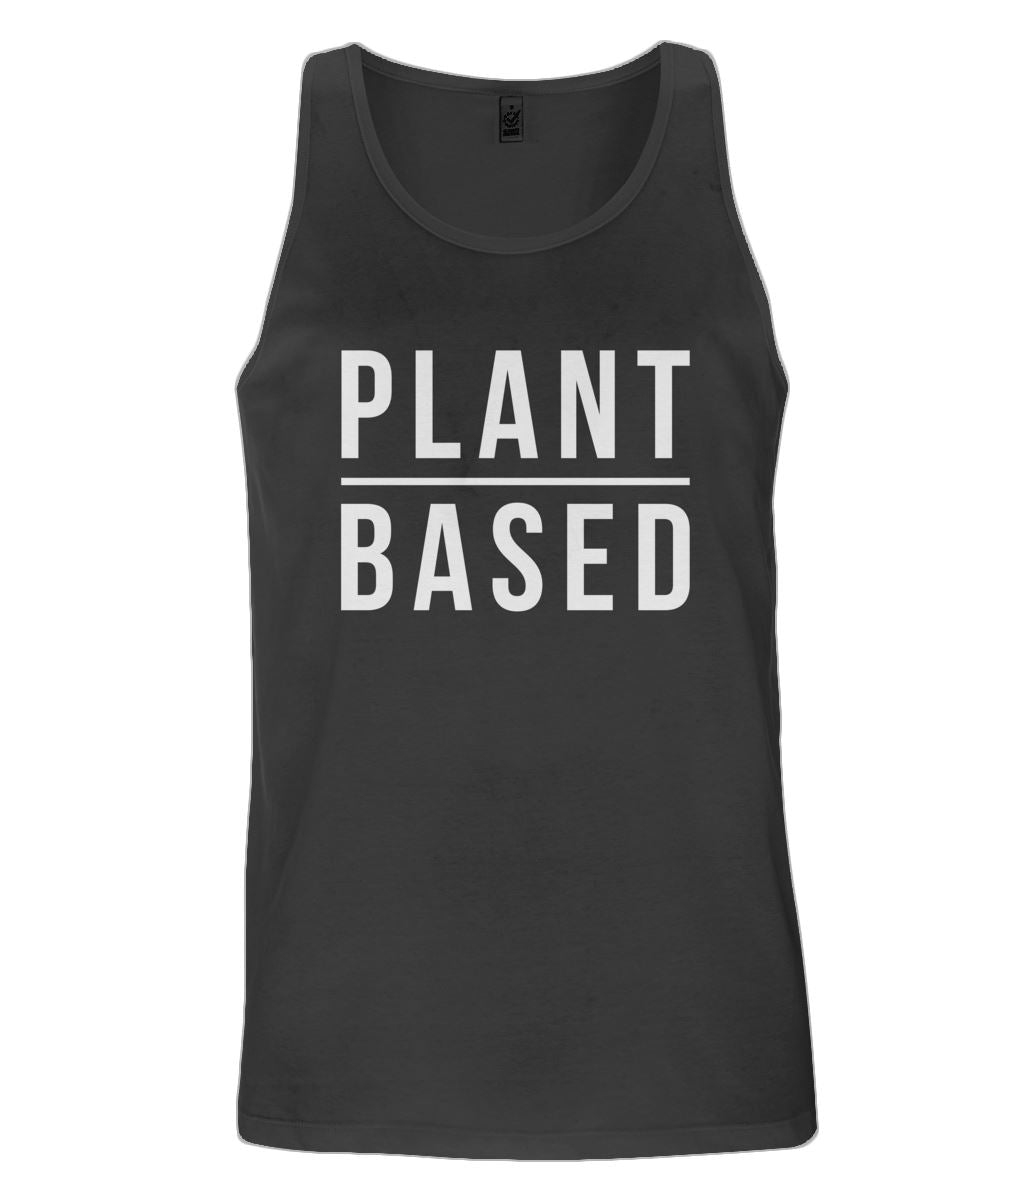 """Plant Based"" Men's Vegan Vest - 100% Organic Cotton Clothing Vegan Original Black Small"